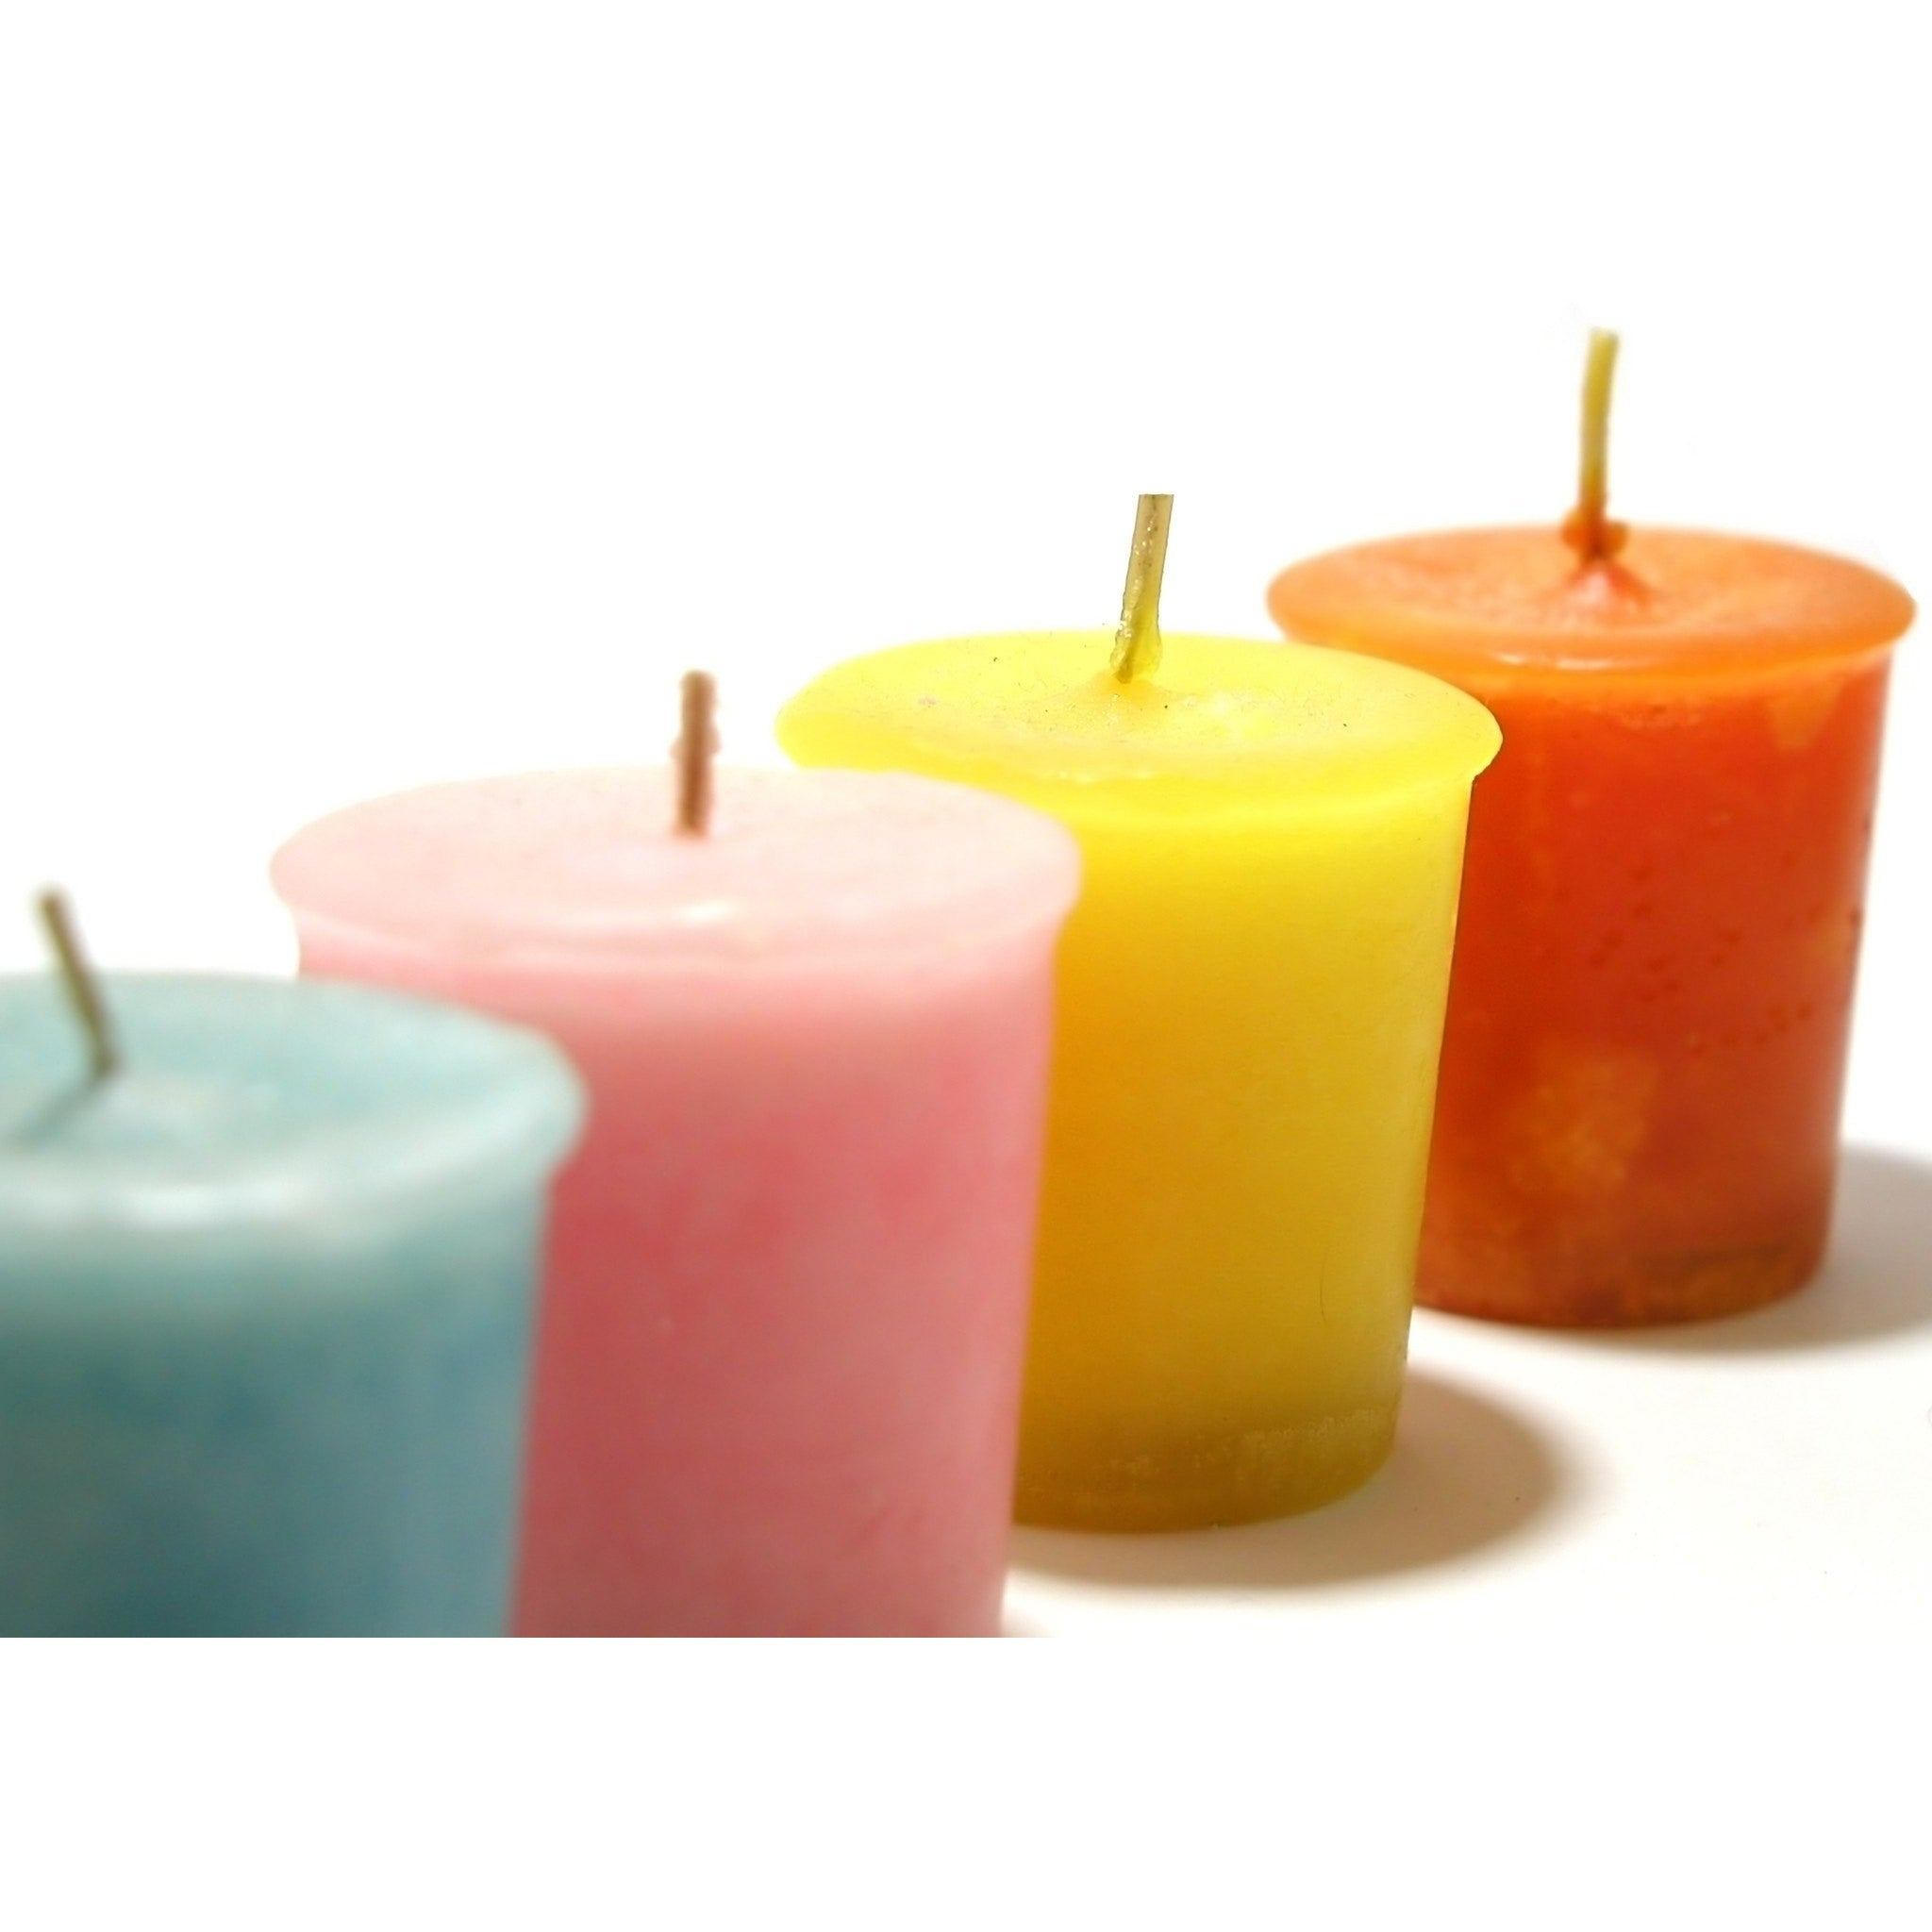 Tropical-Mango Natural Hand Poured Soy Candles - Votive-Single - Bella-Mia Naturals All Natural Soy Candles & Lip Balms - 9